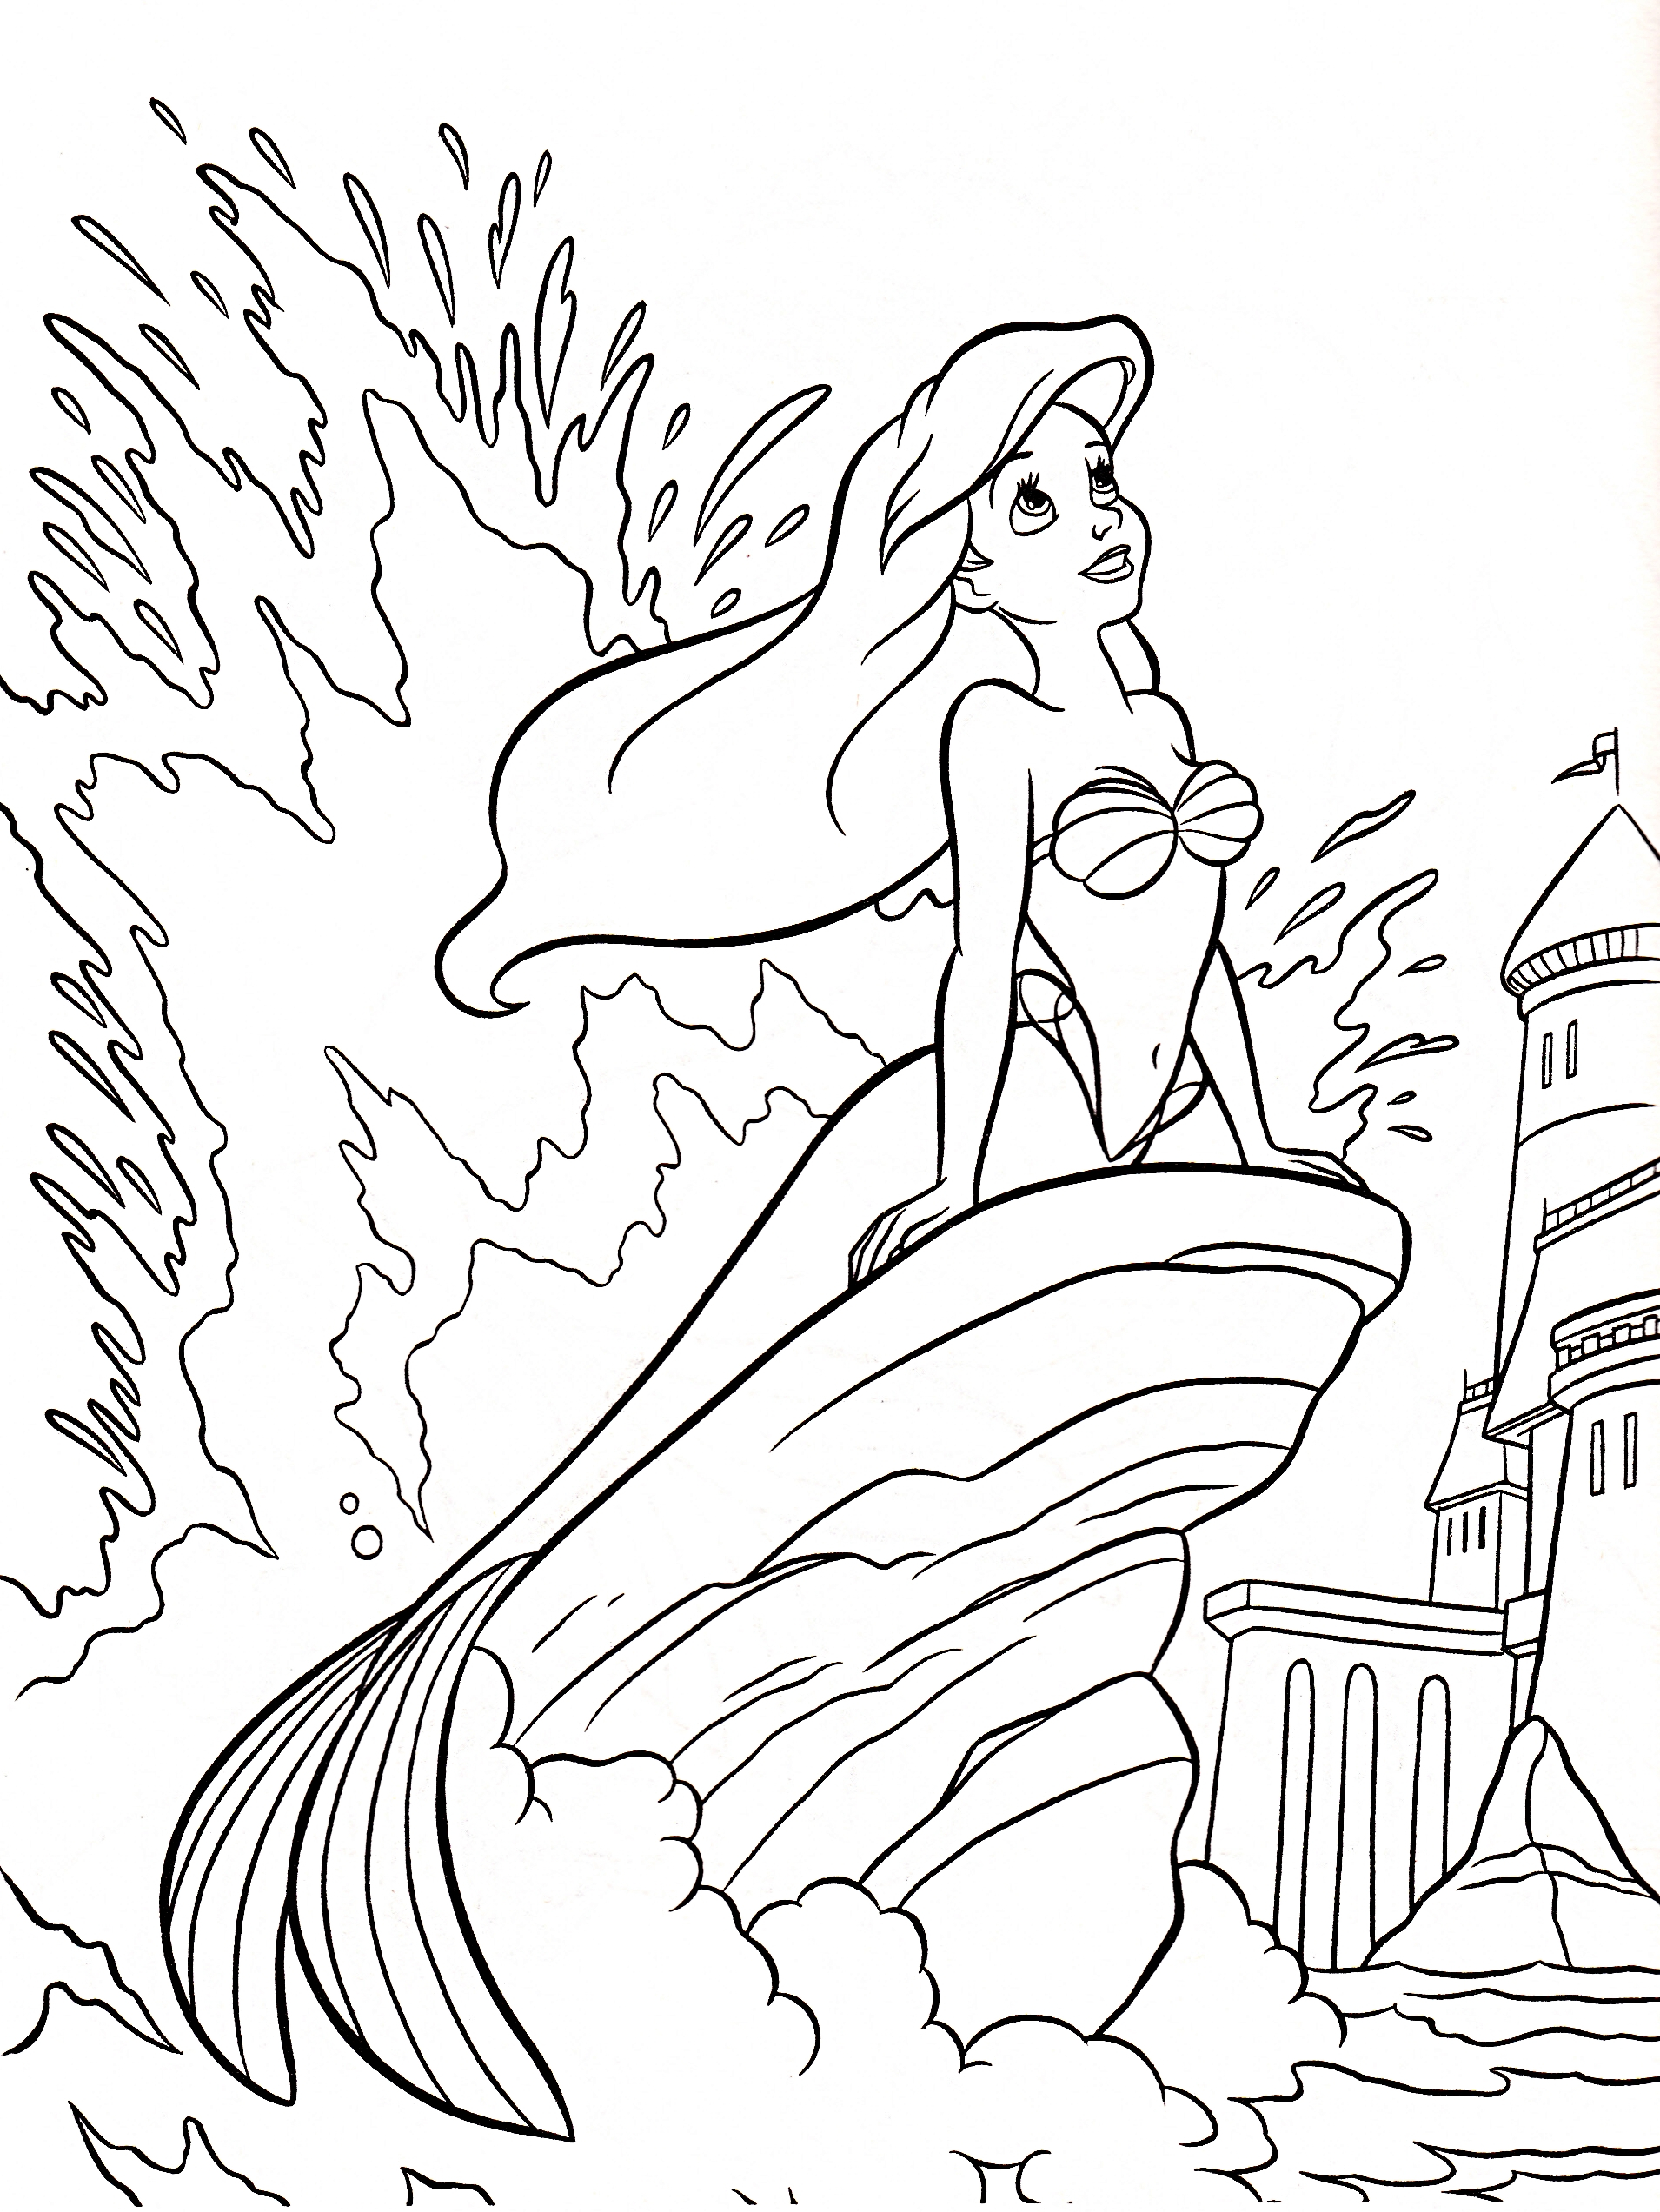 Disney Mermaid Coloring Pages At Getdrawings Com Free For Personal